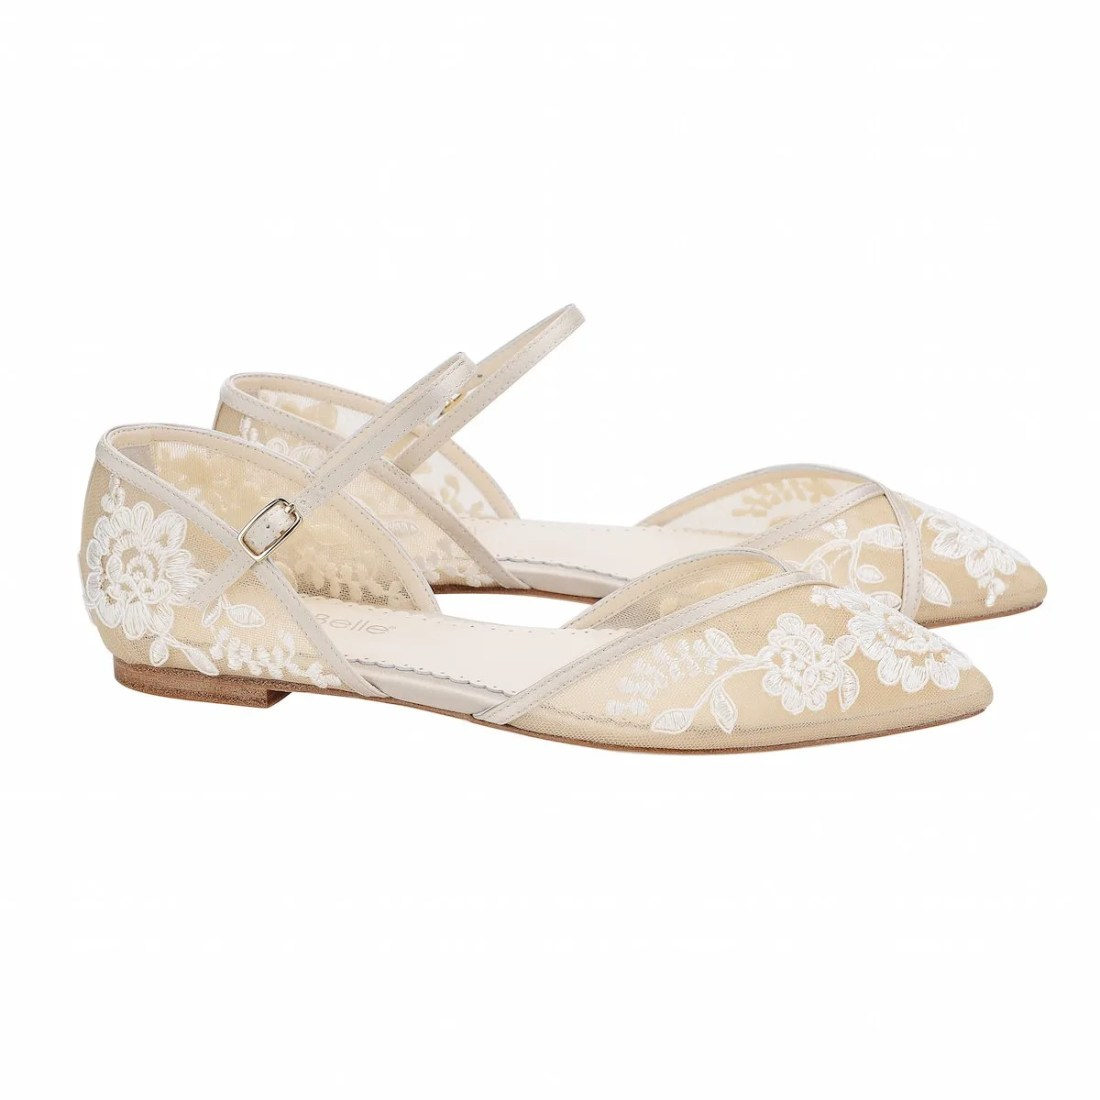 Bridal Shoes Wide Width: Actually Comfortable Wide Width Wedding Shoes • Lust 'Till